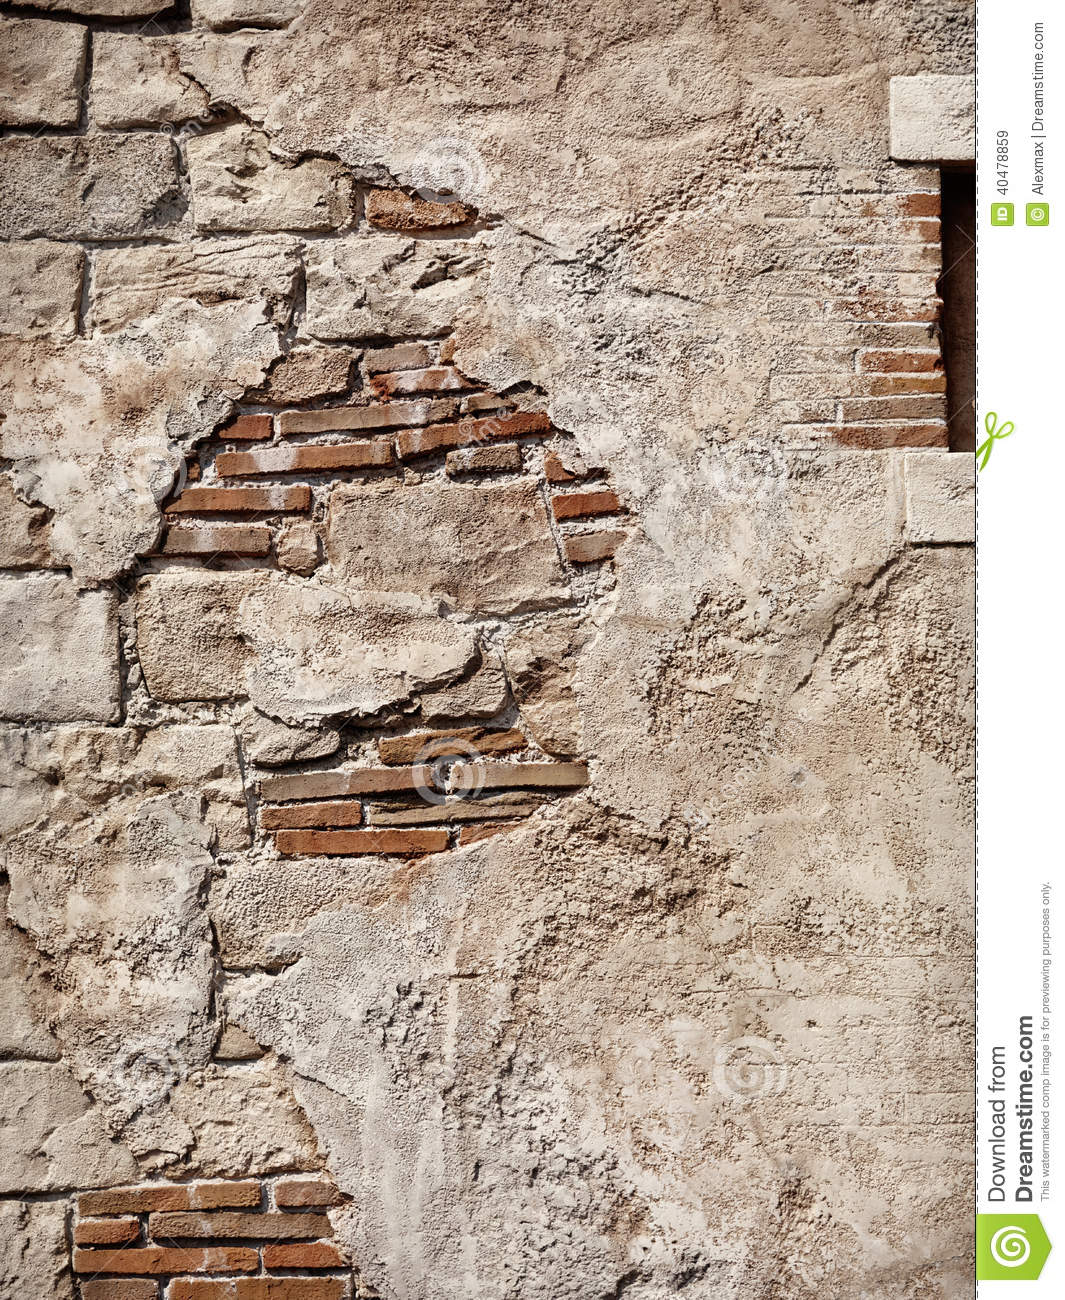 Rustic Stone Walls : Old rustic stone and brick wall texture stock image